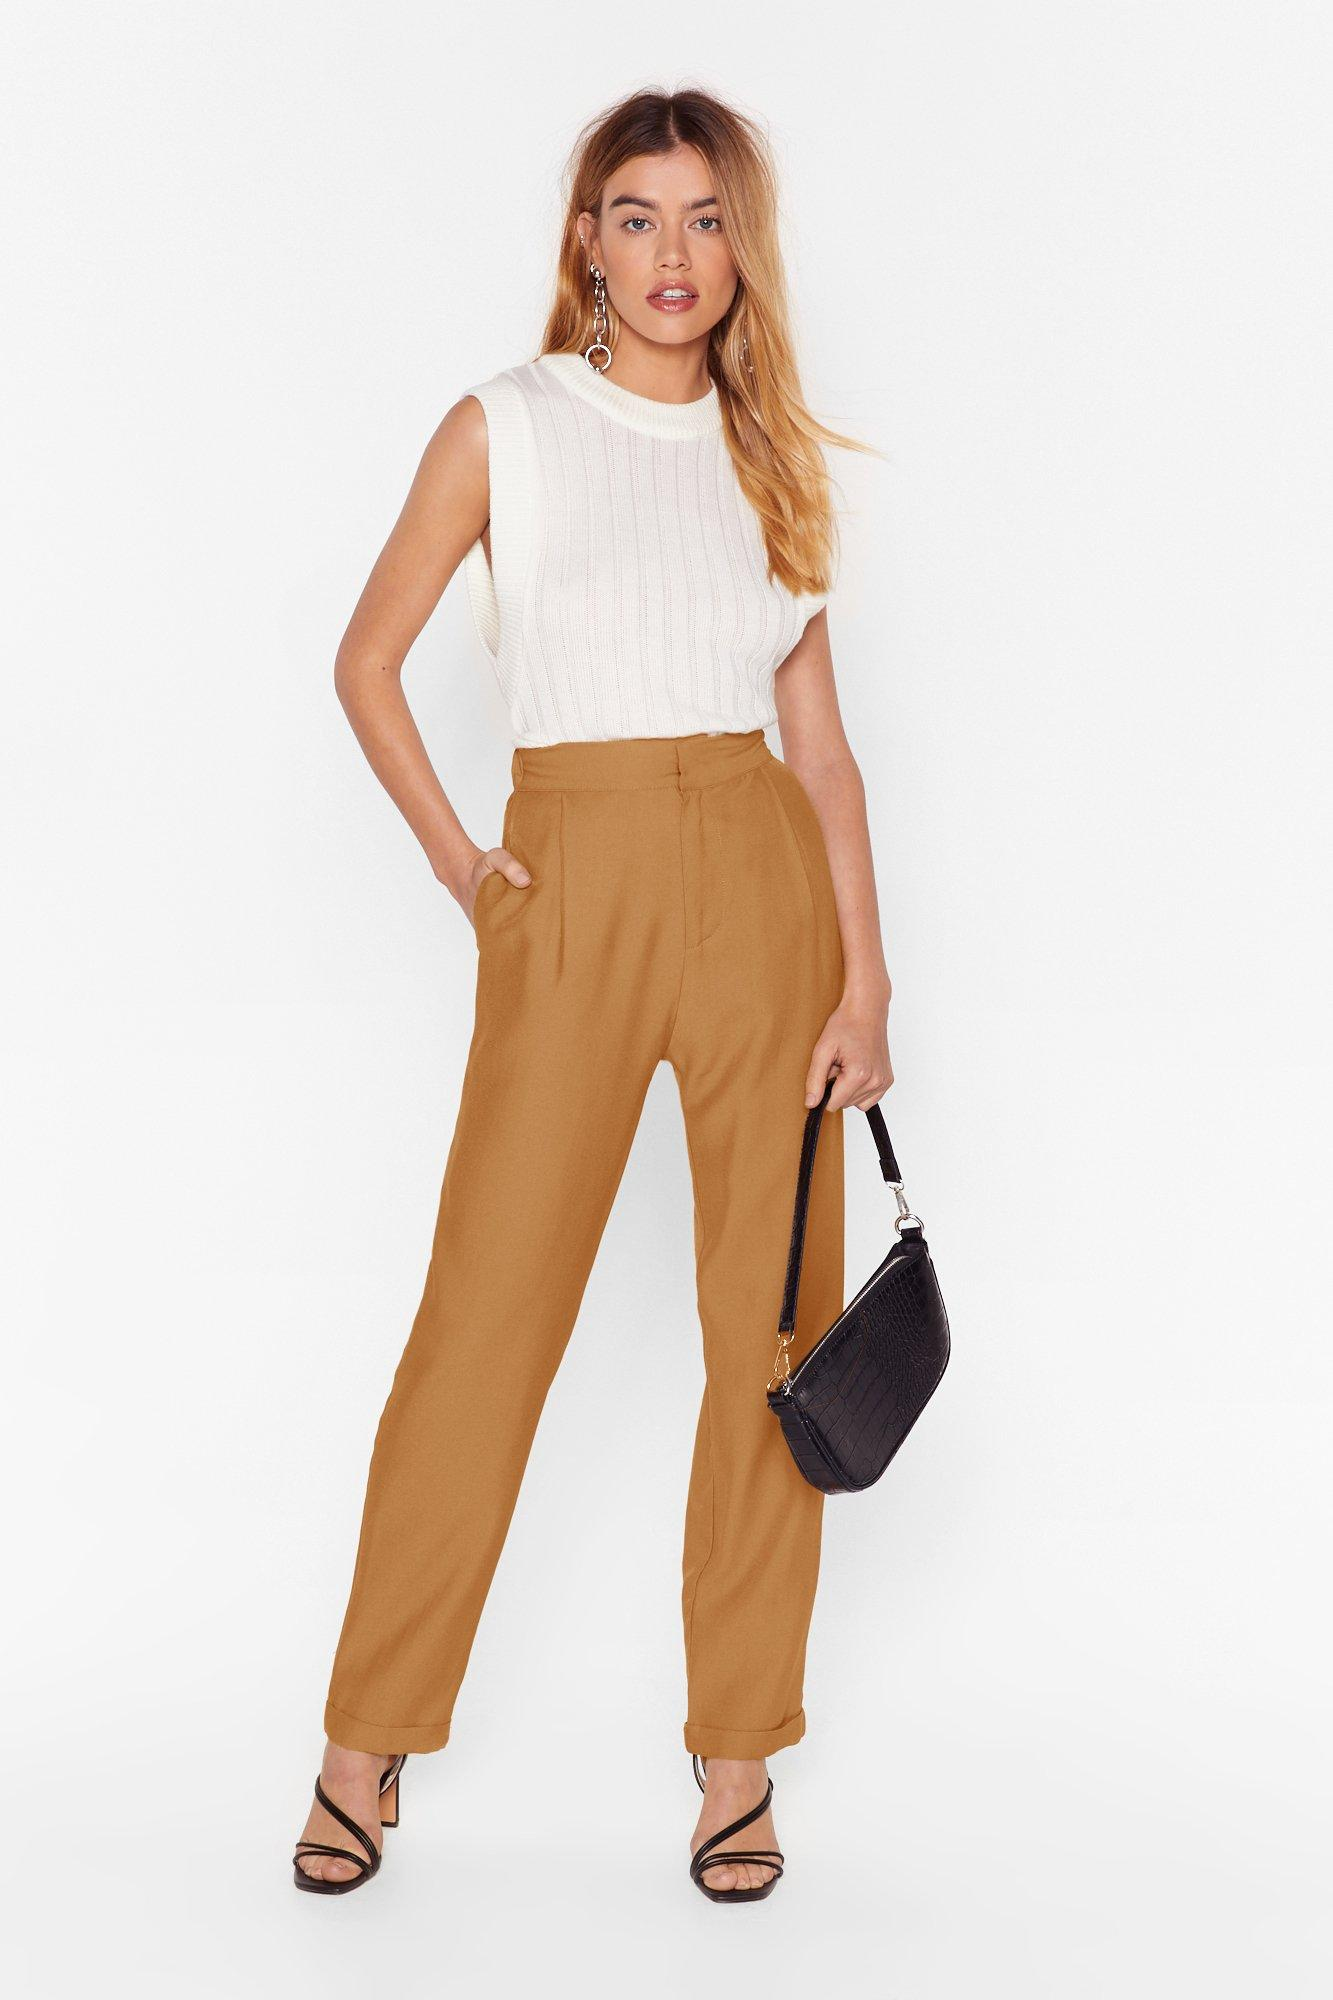 Image of Suiting For You High-Waisted Tapered Pants